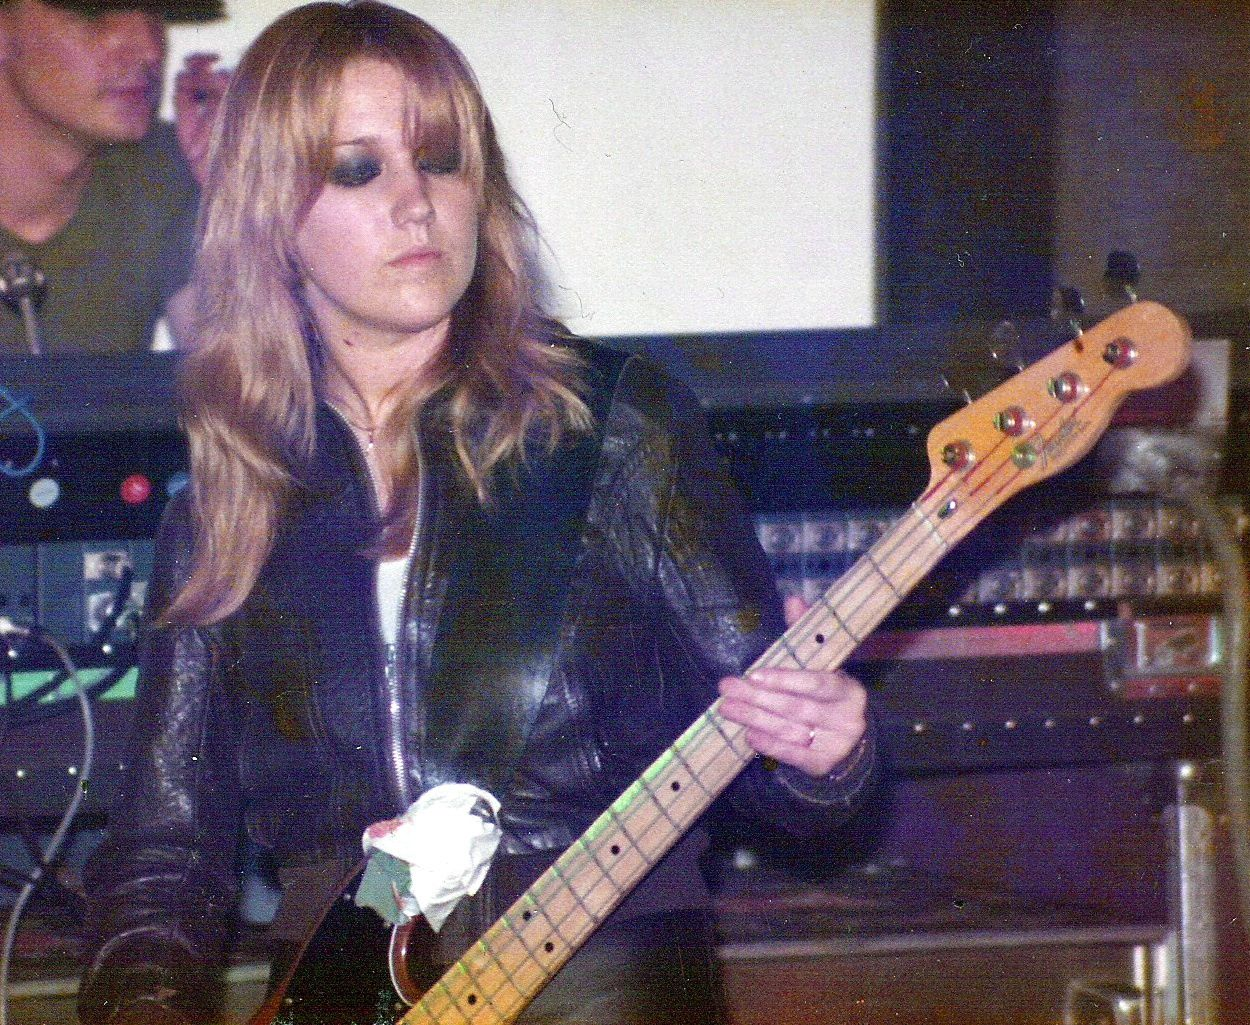 Vicki Blue, The Runaways (1978)